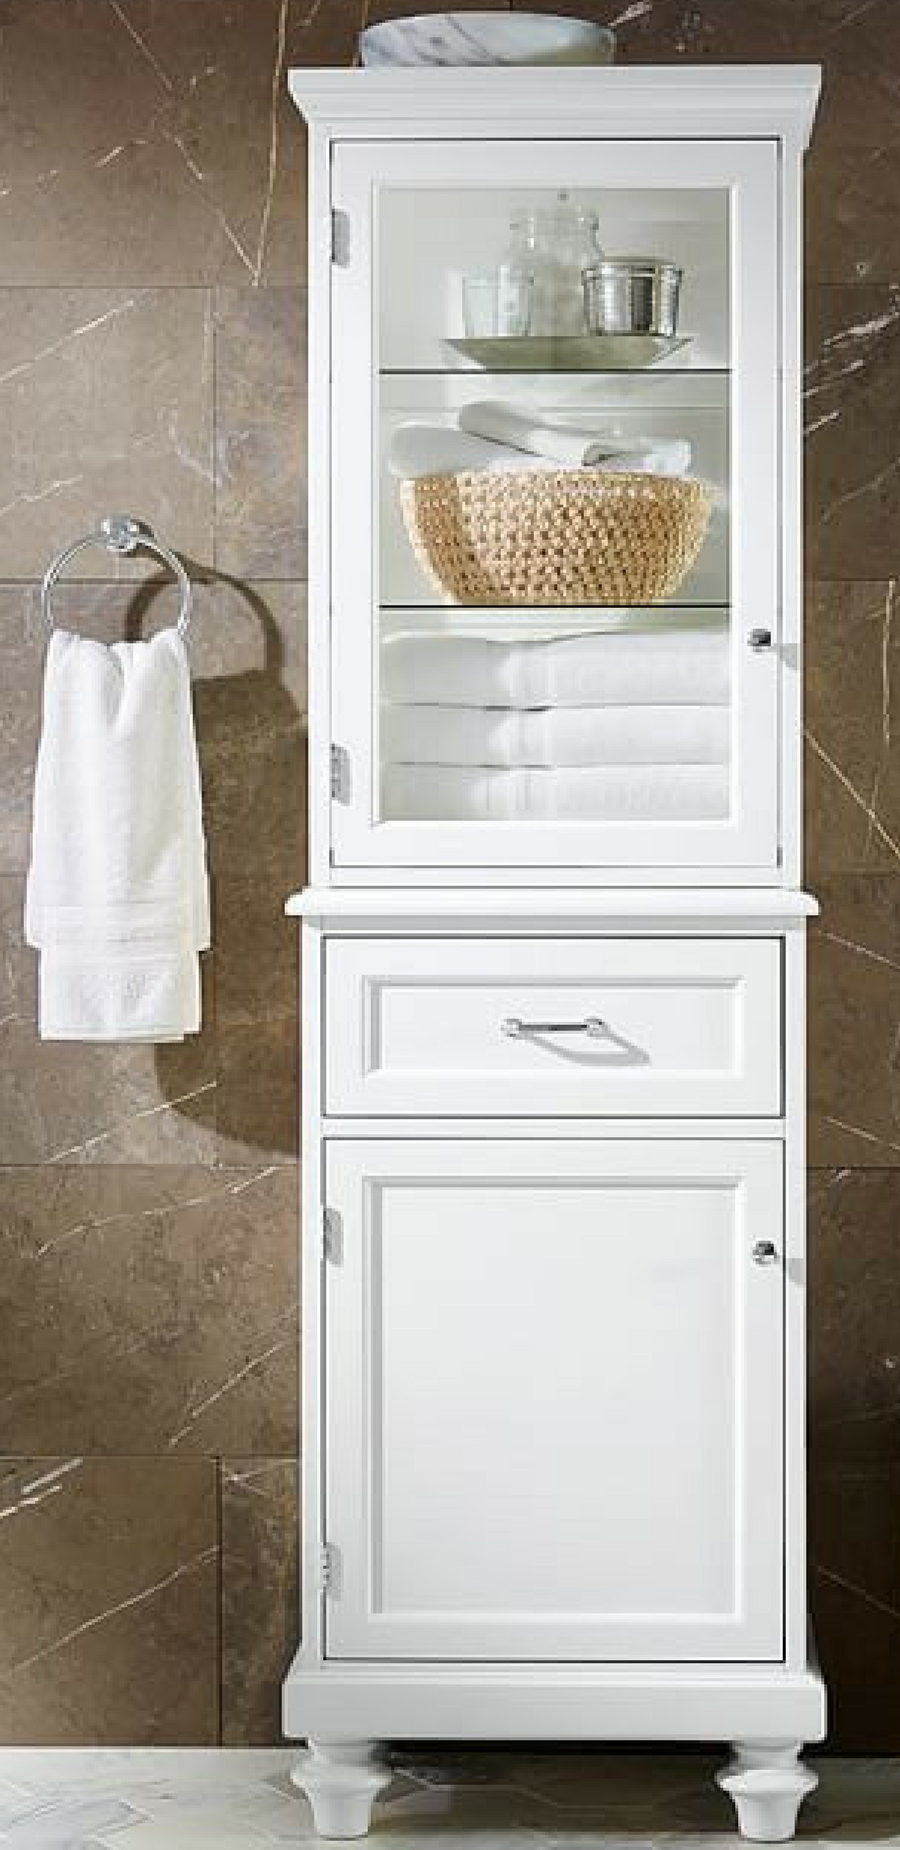 Attirant Styled Like A Vintage Linen Closet, This Cabinet Offers Generous Storage In  A Compact Footprint. #ad #storage #bathroom